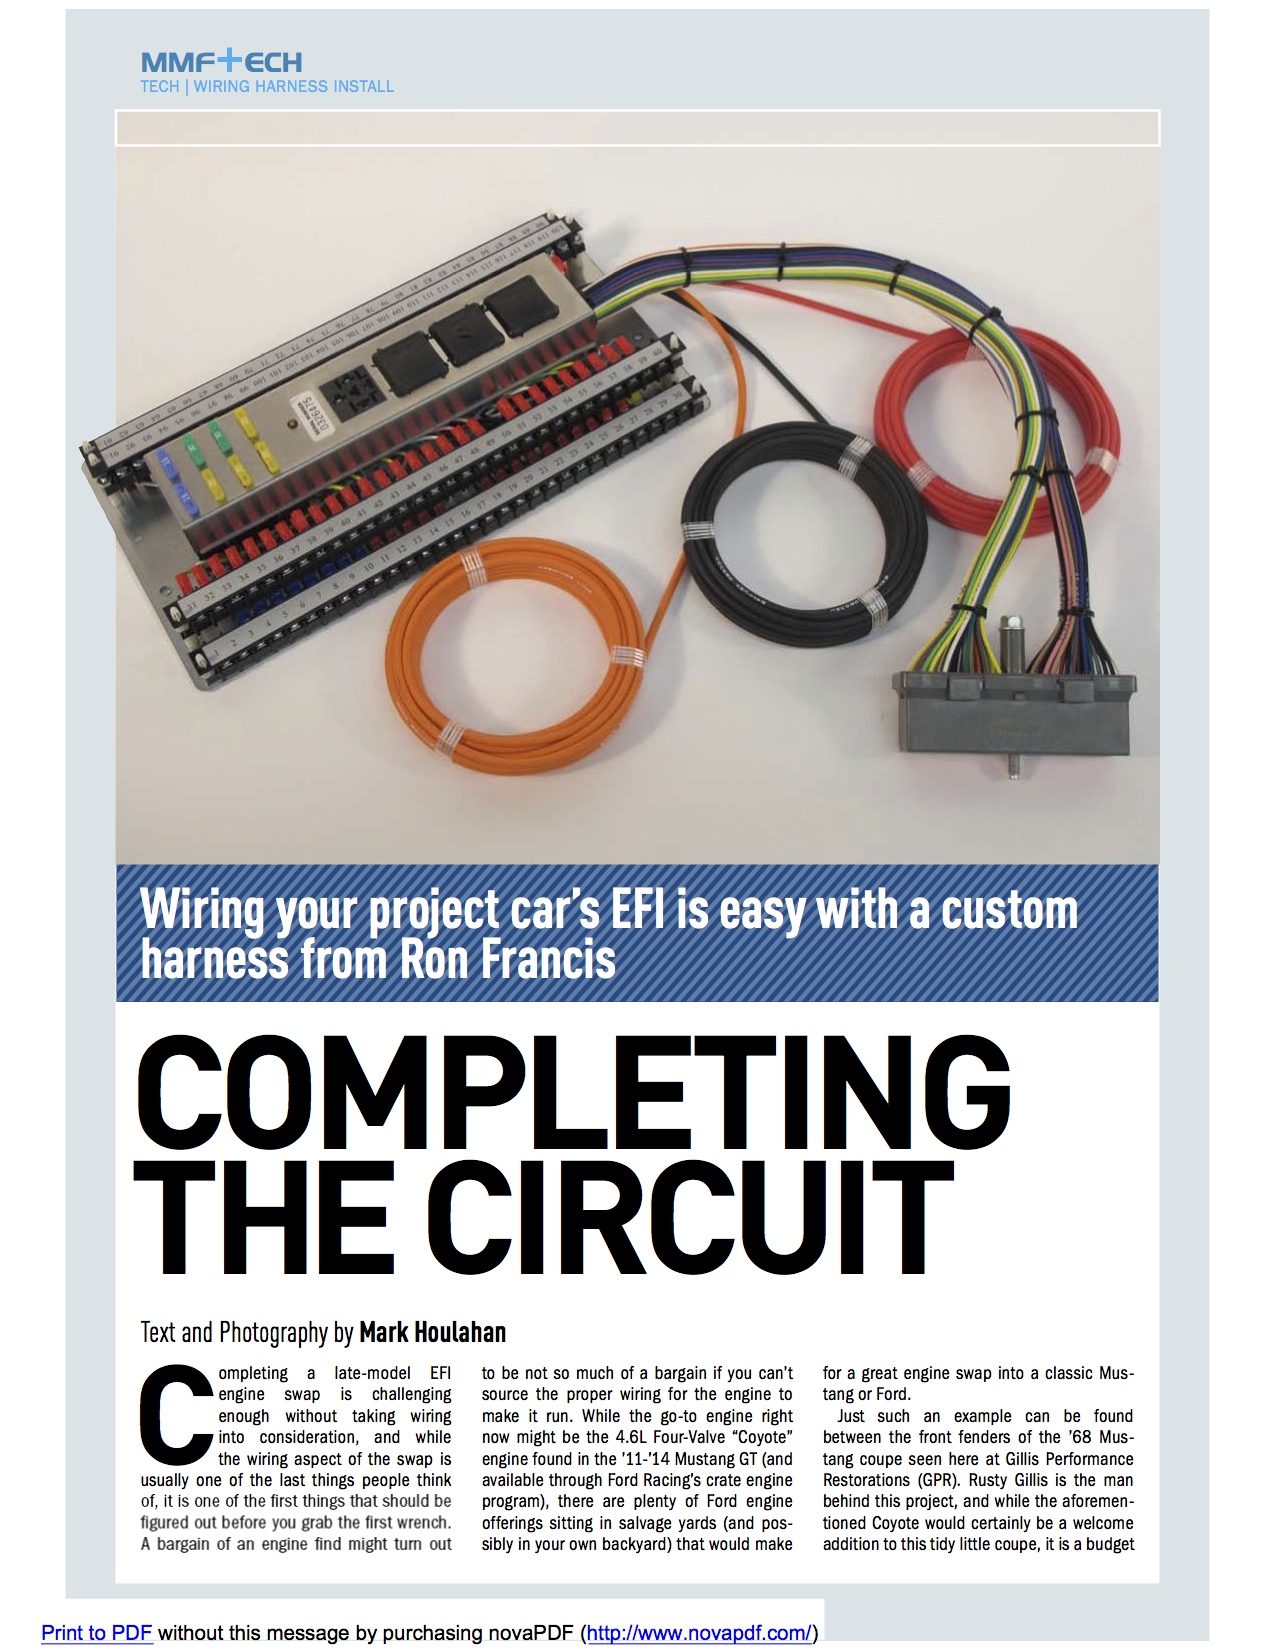 Completing The Circuit Cover